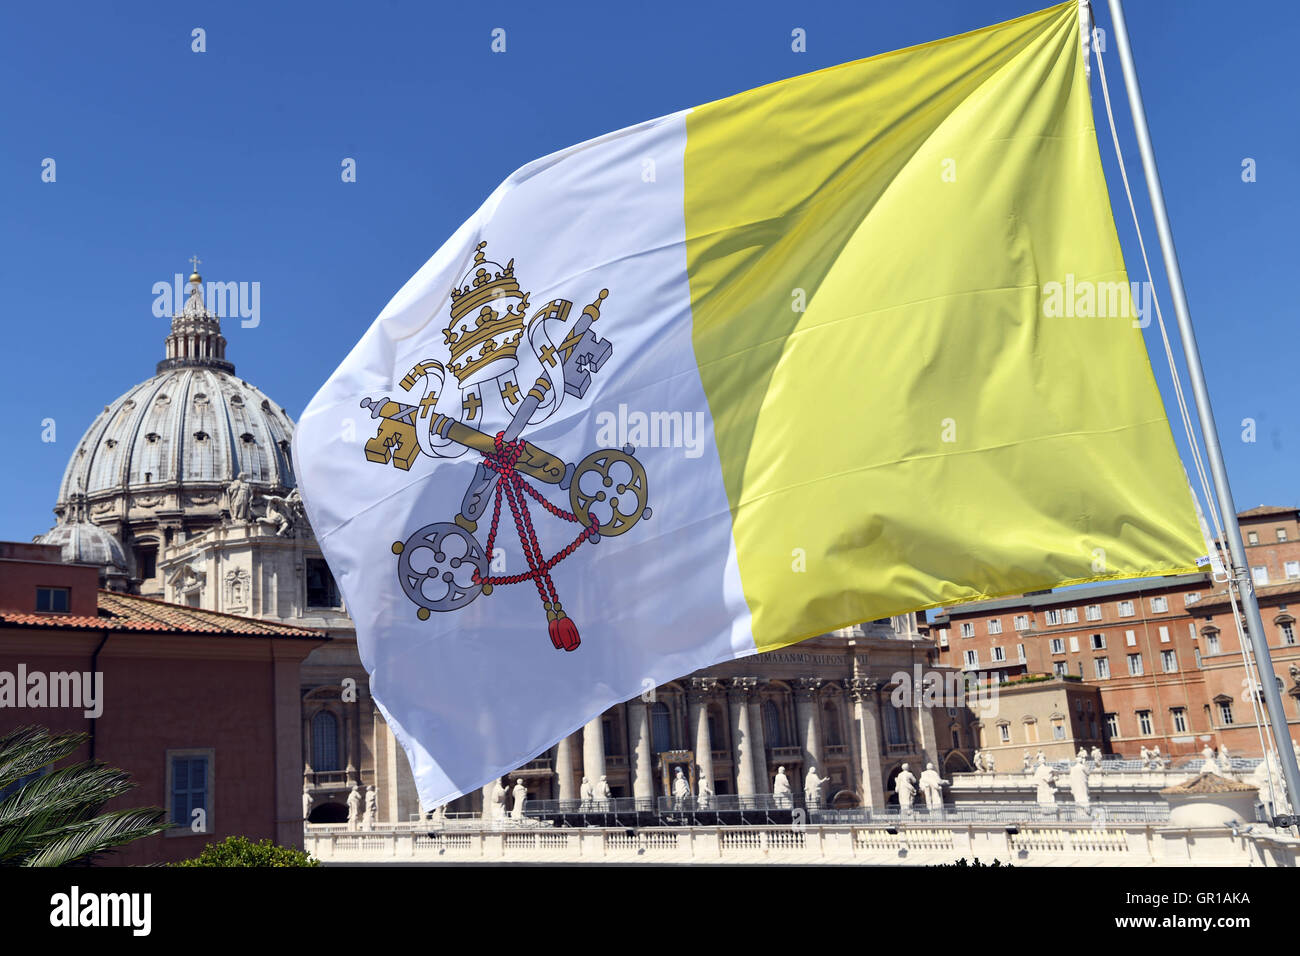 A flag with the coat of arms of Vatican City waves in Vatican City, 02 September 2016. St. Peter's Basilica can Stock Photo